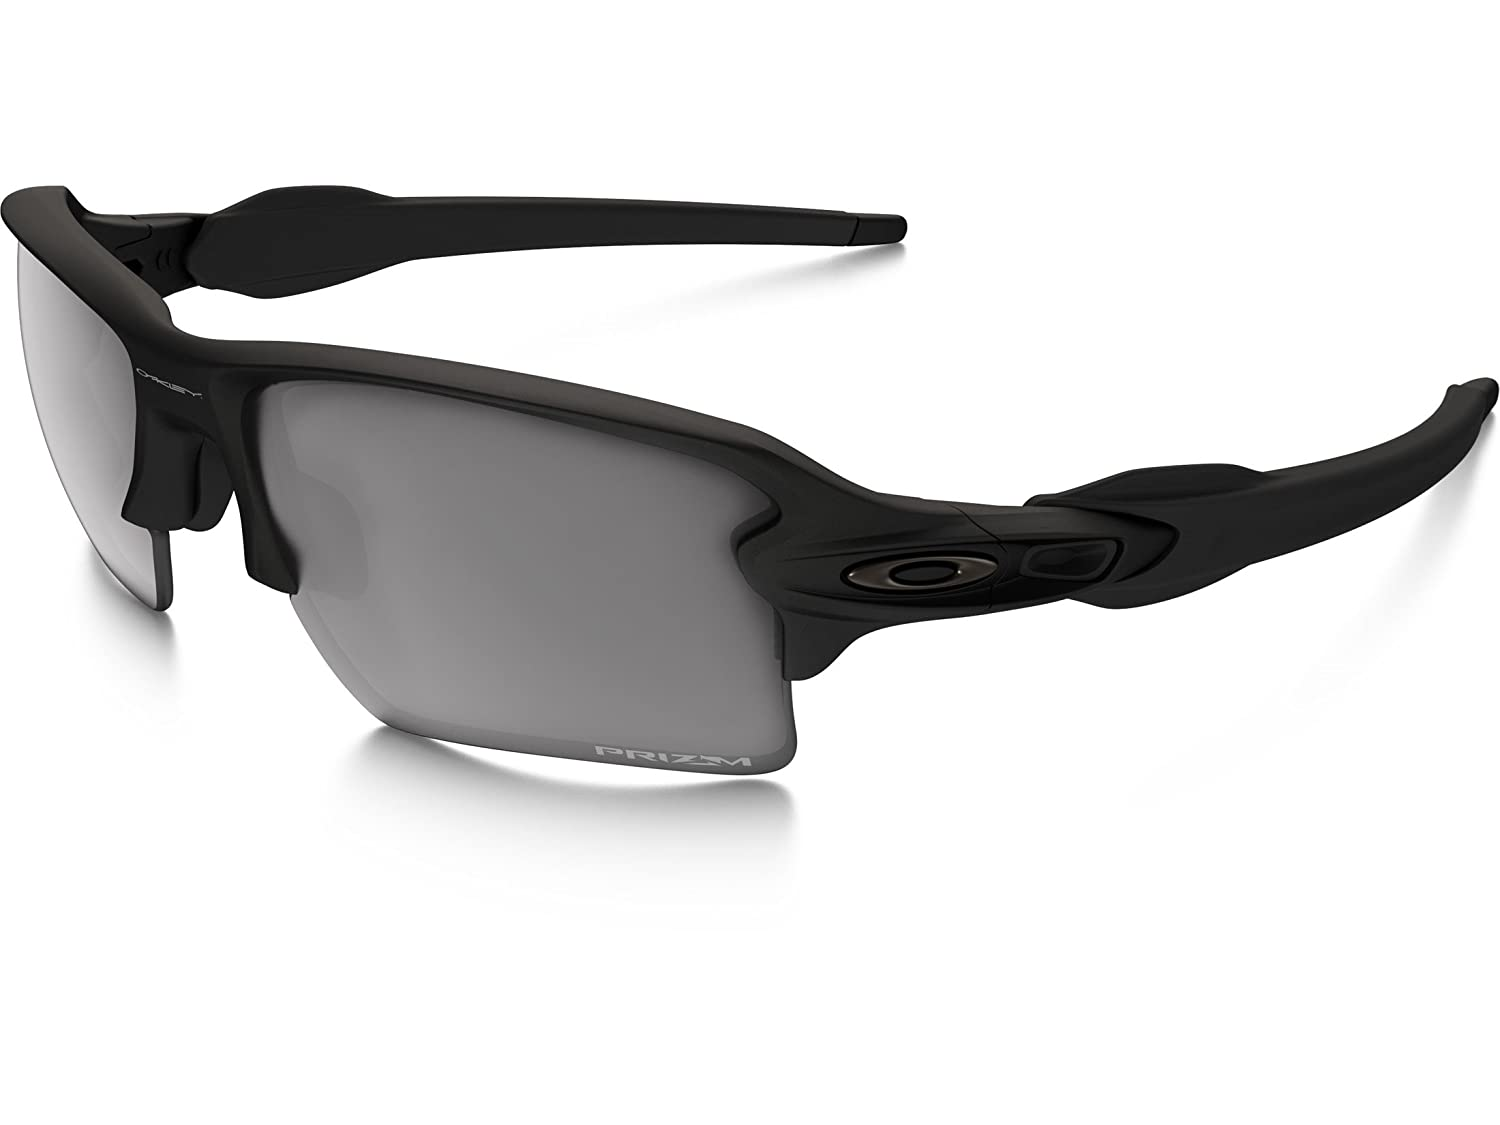 f293246faf Amazon.com  Oakley SI Flak 2.0 XL Sunglasses Prizm Gray Lens Matte Black  Frame  Clothing